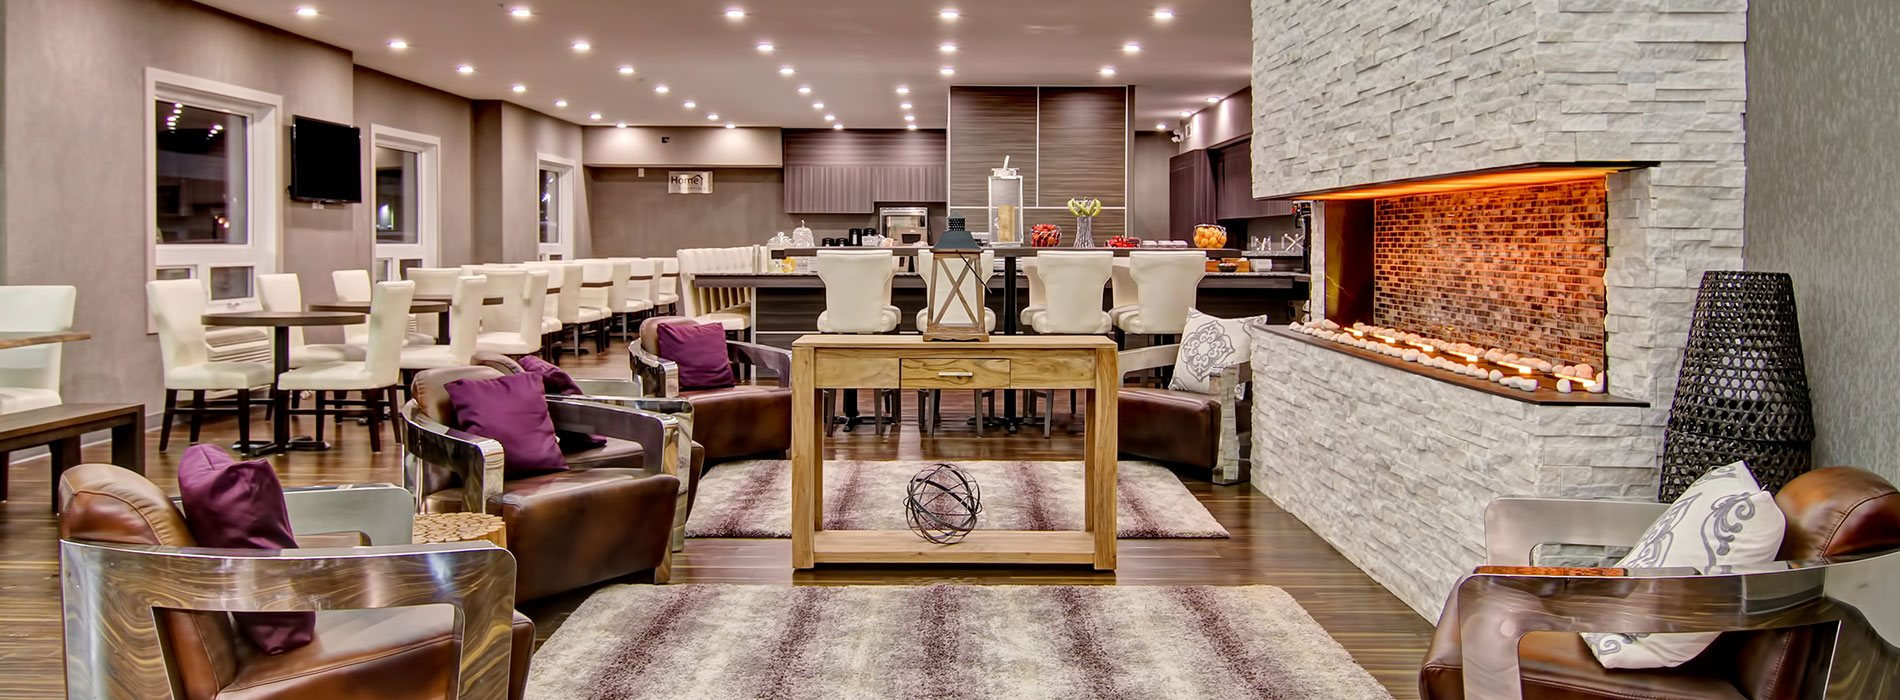 Brown leather club chairs and a tall majestic off-white limestone electric fireplace define the lounge space at d3h Home Inn & Suites Saskatoon South.  Rows of eating tables, benches and wrap-around breakfast counter, all amidst a sea of white upholstered dining chairs, define the HomeEssentials breakfast bar.